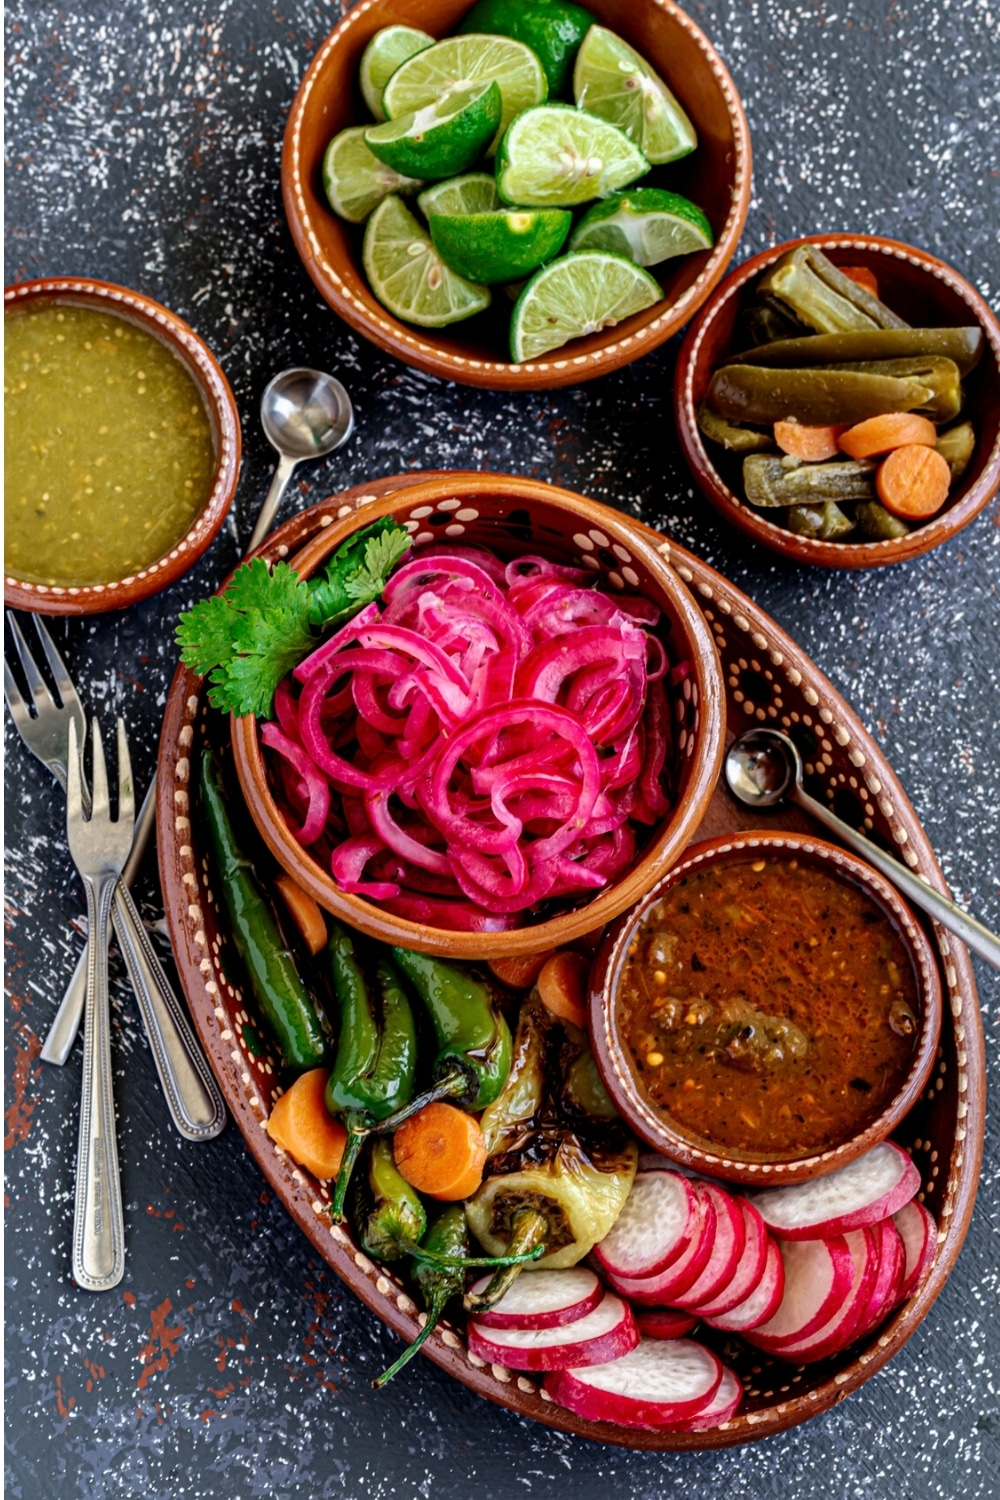 Mexican pickled onions served on a rustic clay condiment tray bought here in Mexico.